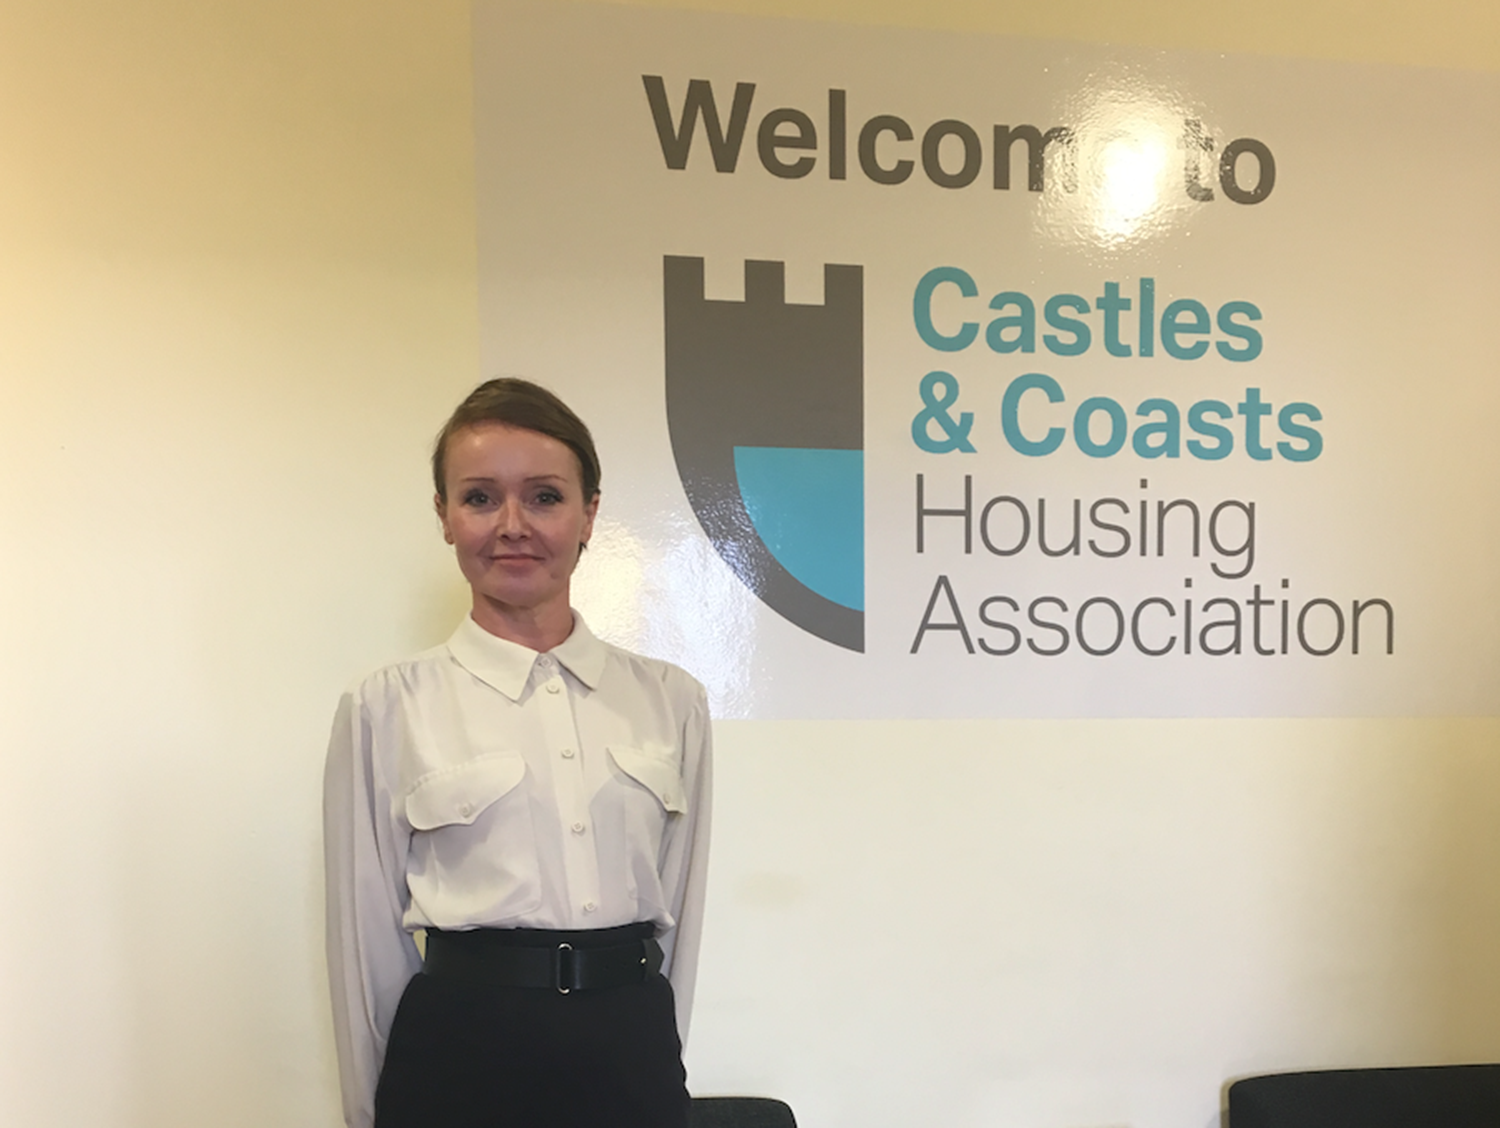 Castles & Coasts Appoints New Housing Services Director